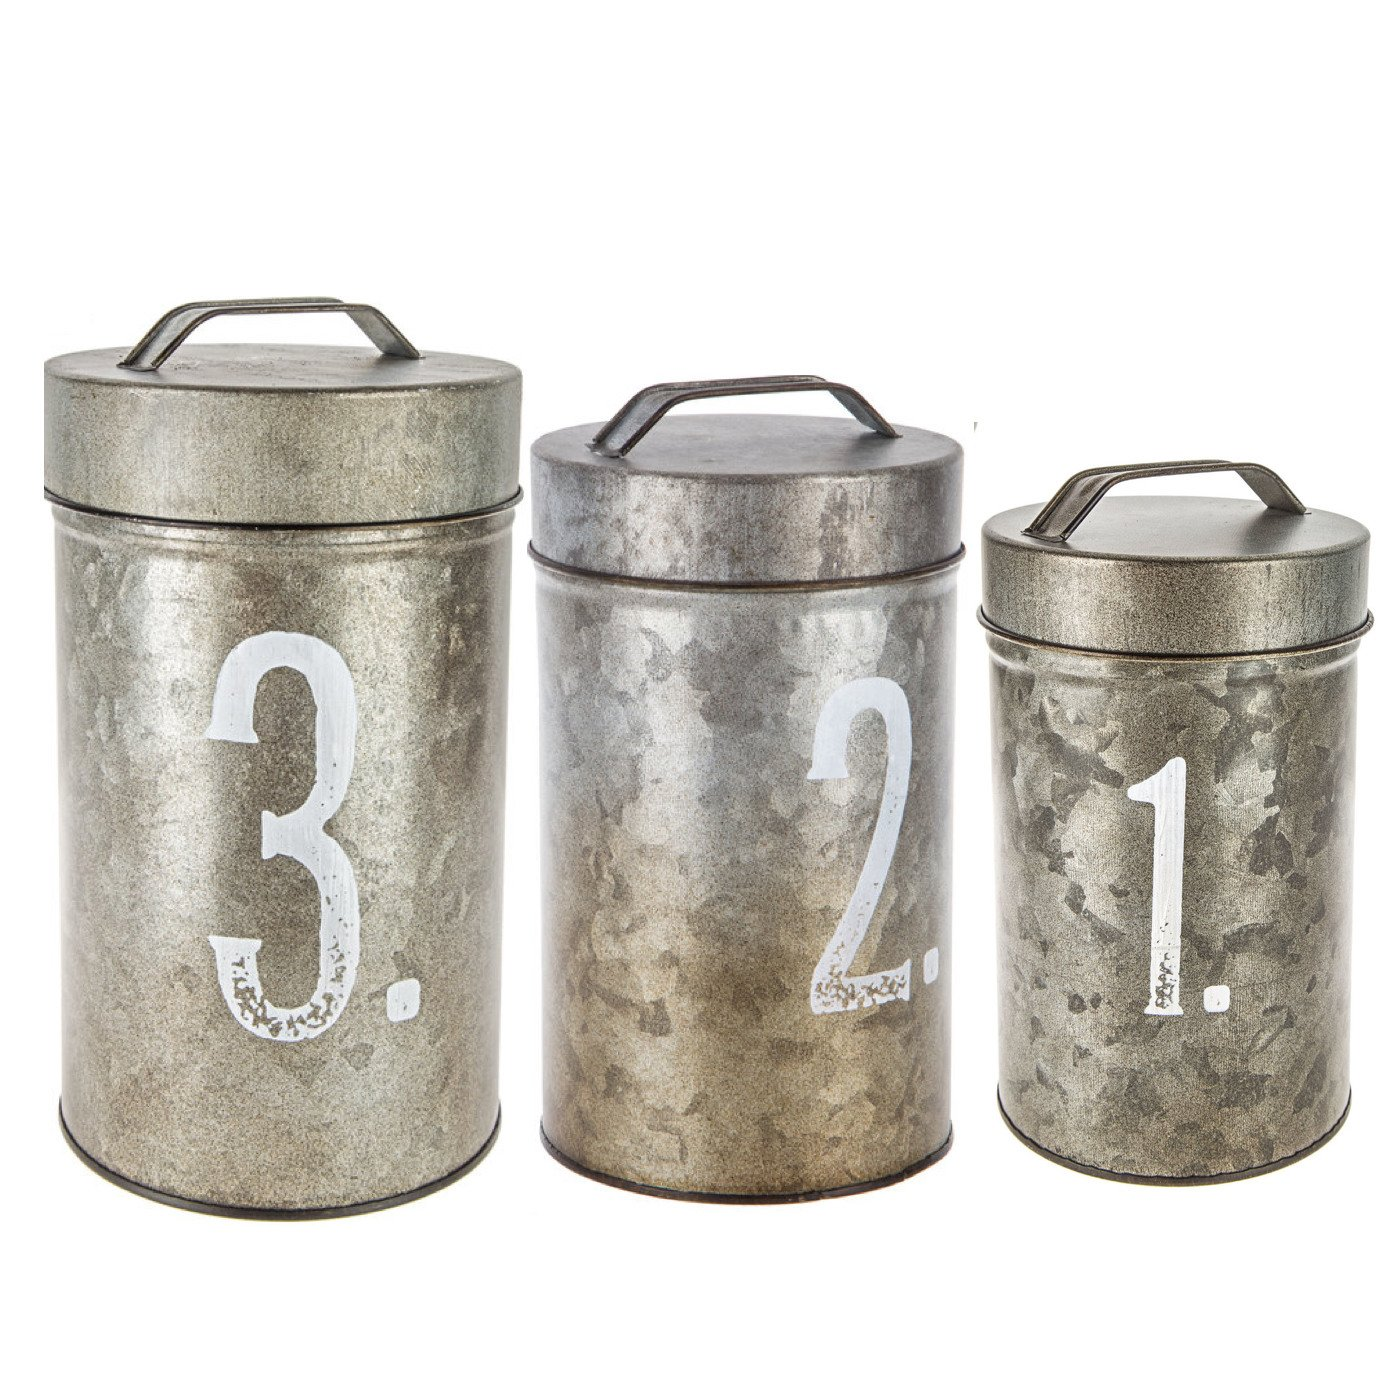 Numbered Galvanized Metal Canister Set of Three